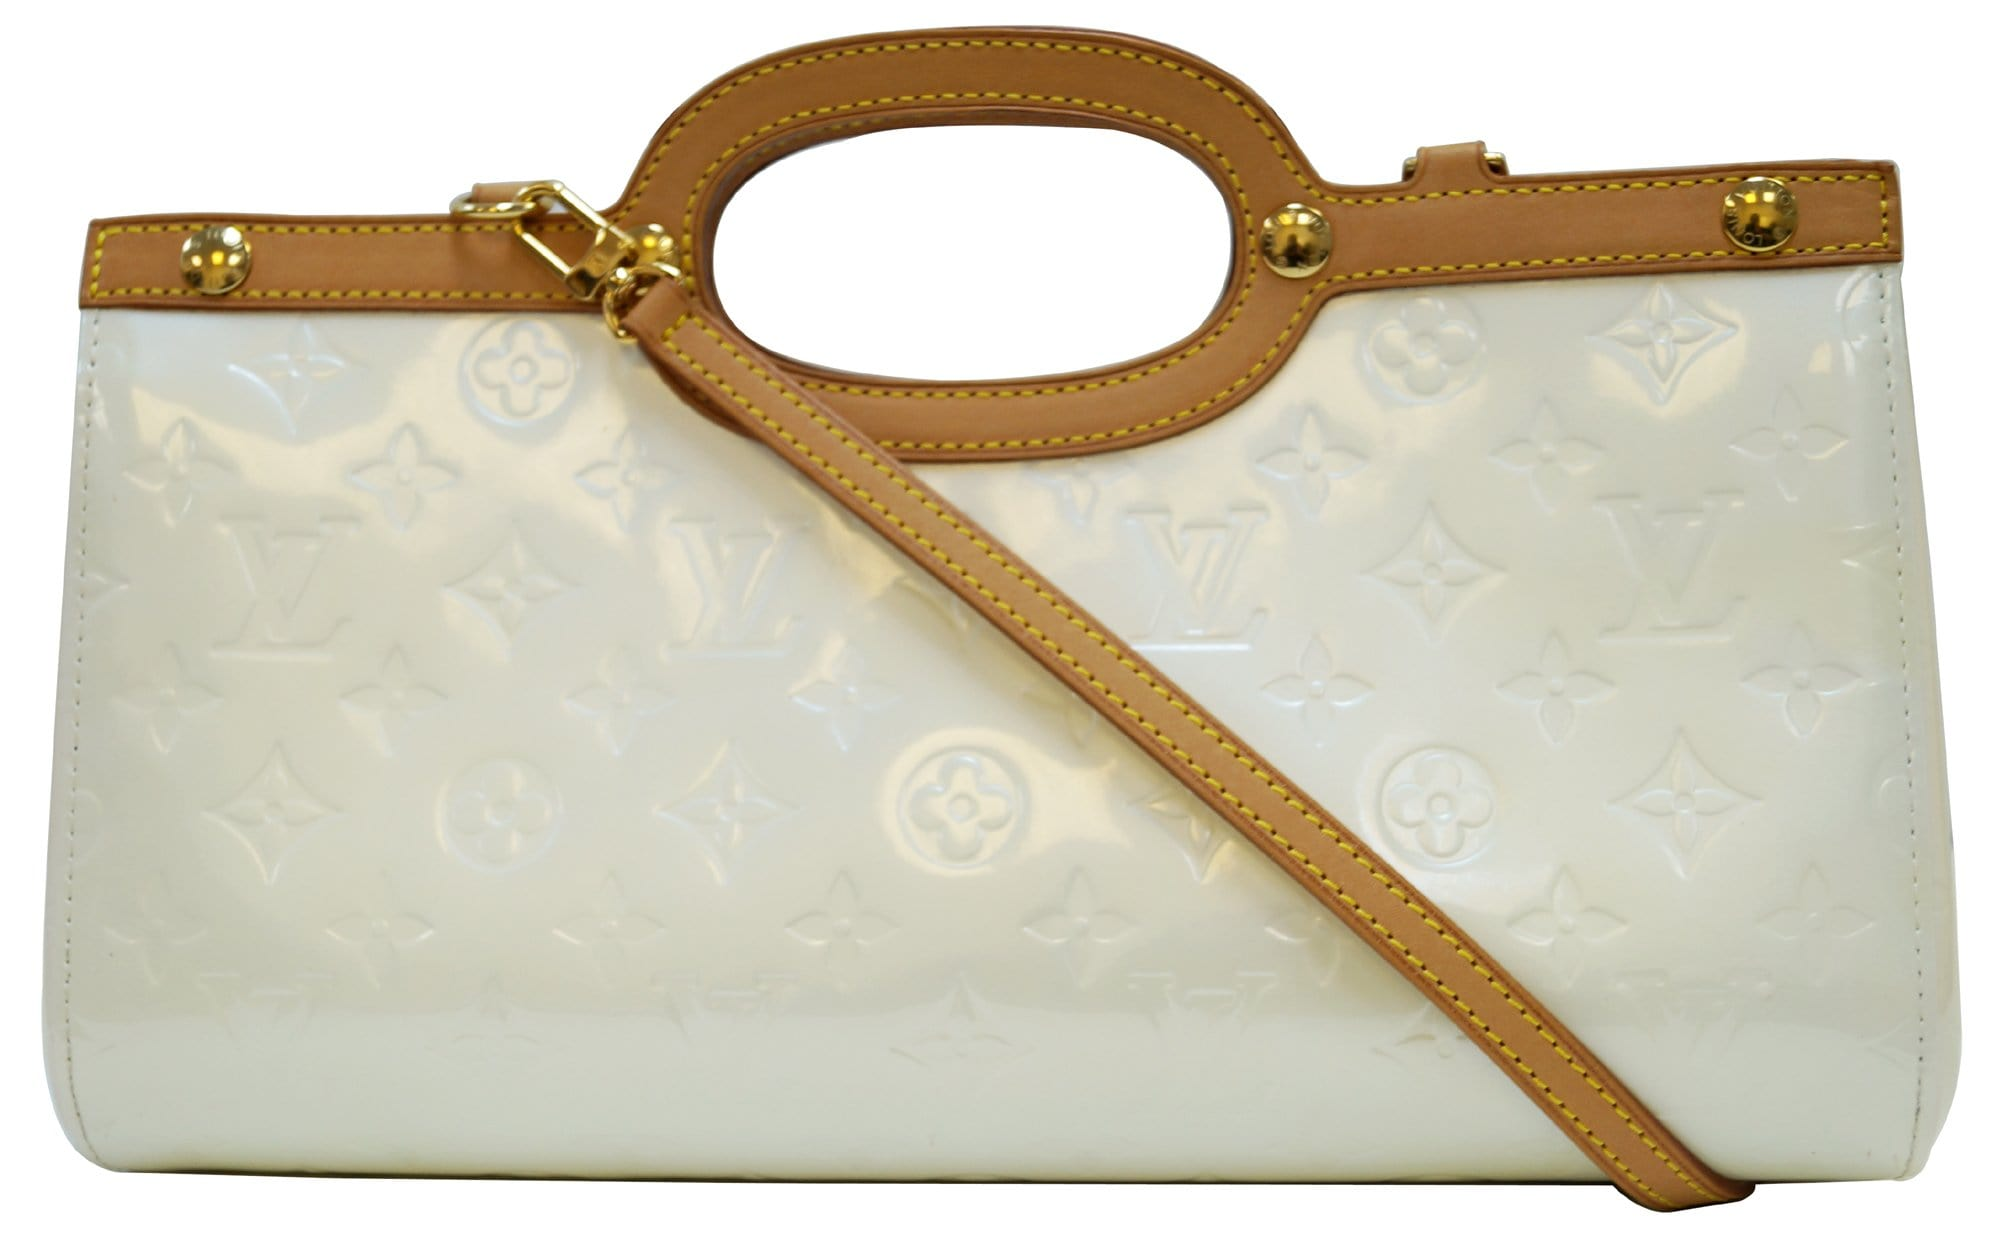 LOUIS VUITTON Cream Vernis Leather Roxbury Drive Shoulder Bag a4179f1f0e998